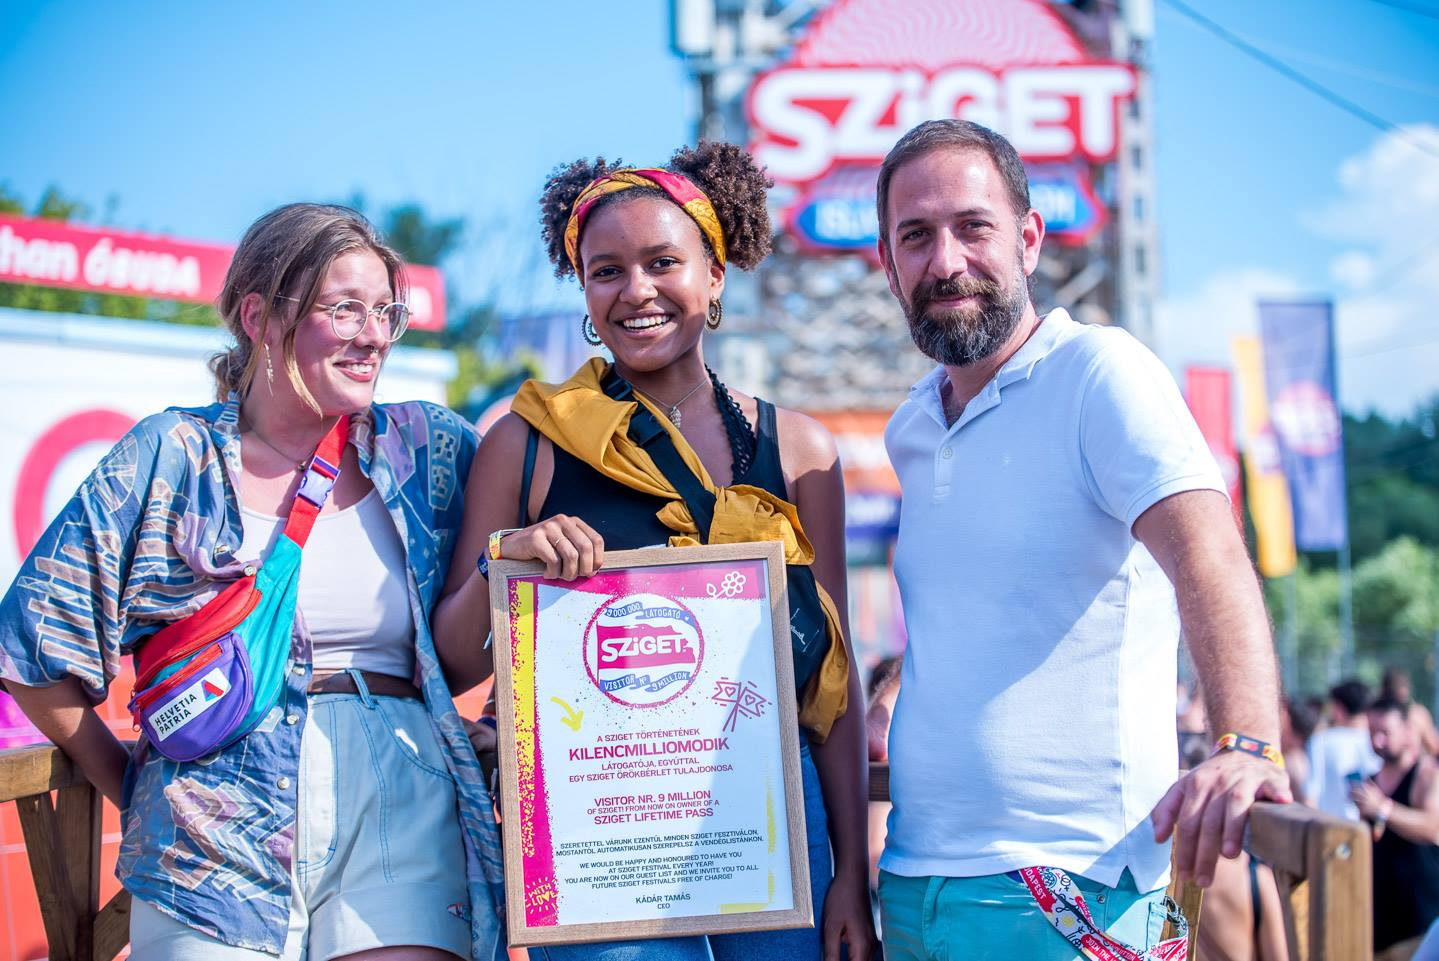 Swiss Student 9 Millionth Visitor At Sziget Festival